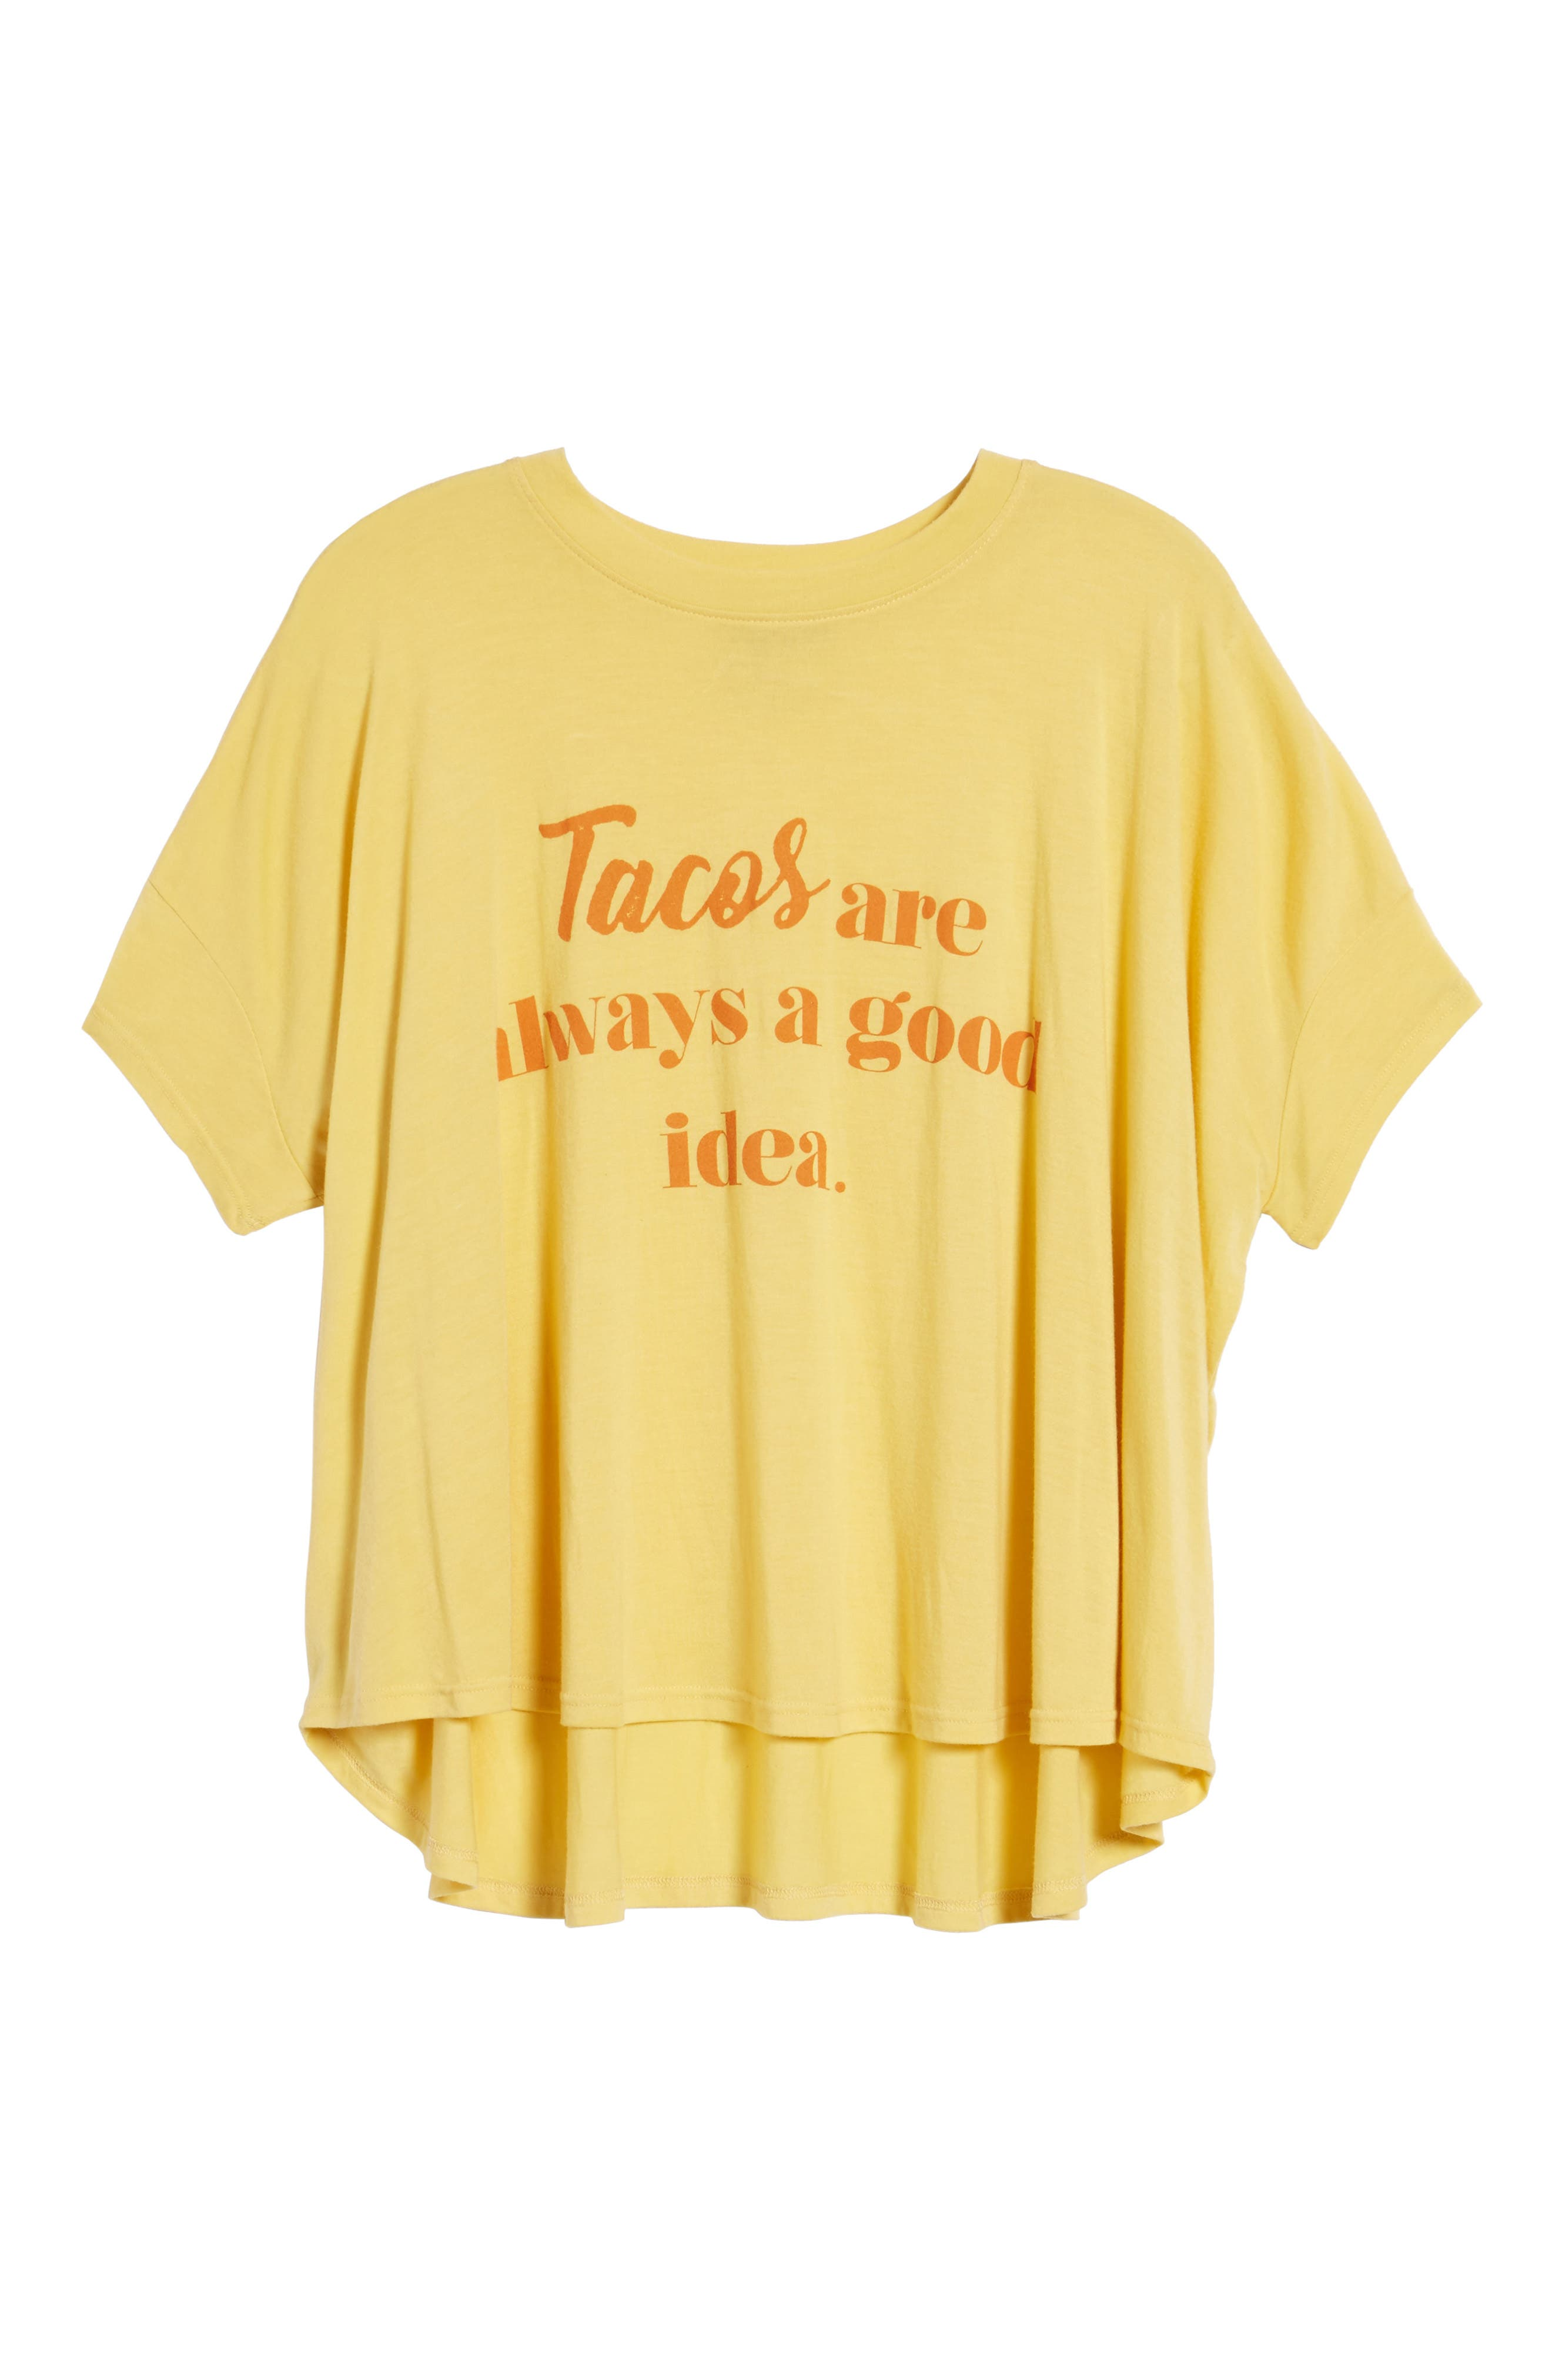 Emerson Tee,                             Alternate thumbnail 6, color,                             Tacos Always